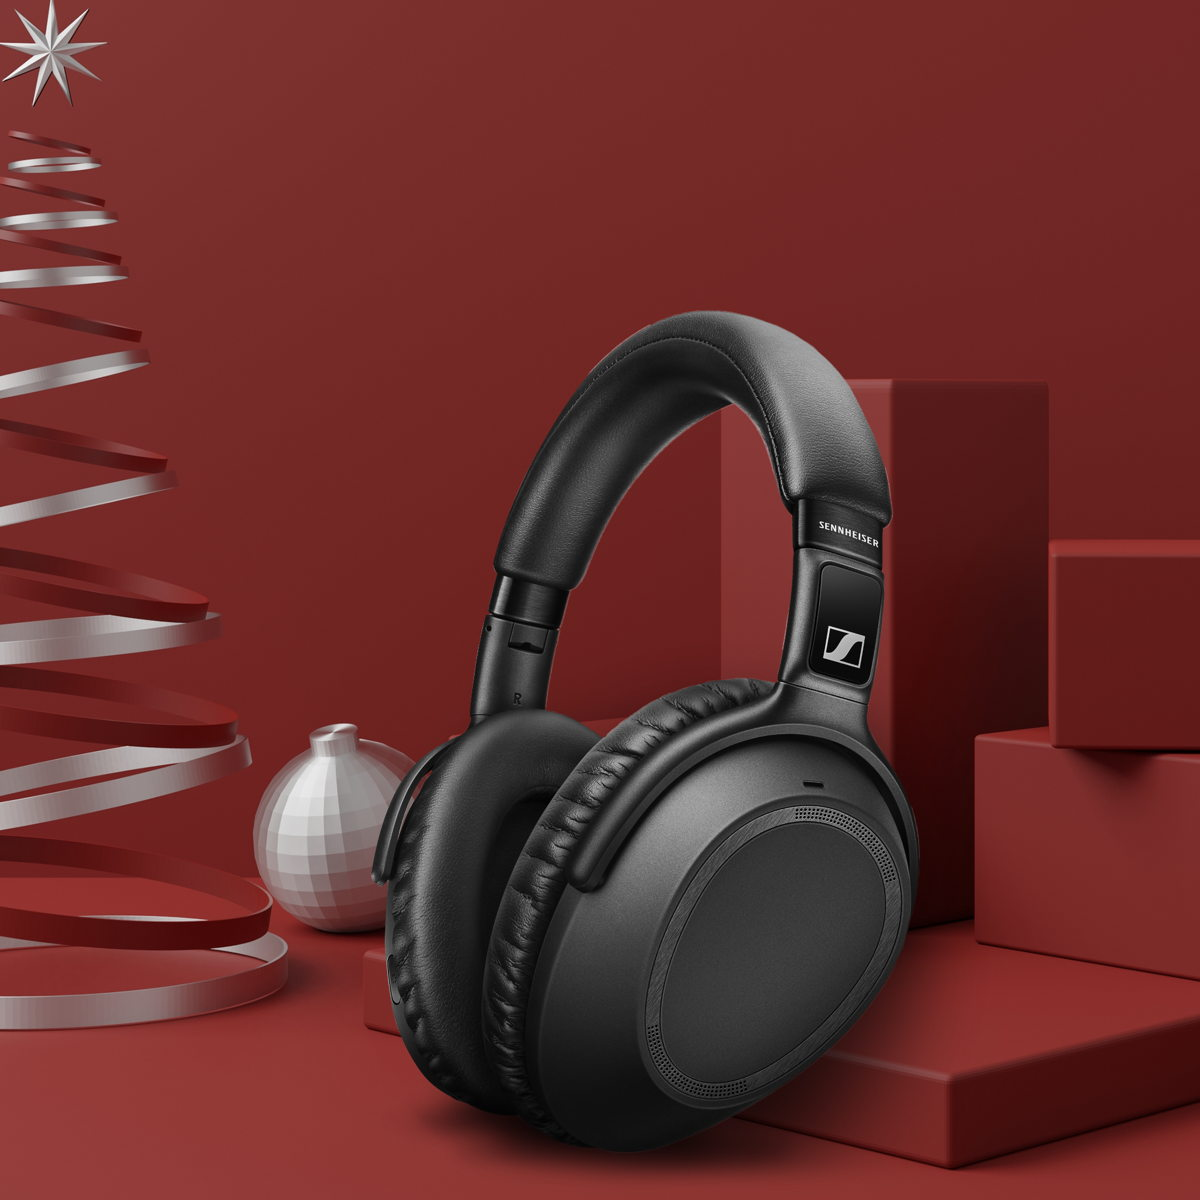 An all-time favorite underneath the Christmas tree: the PXC 550-II Wireless